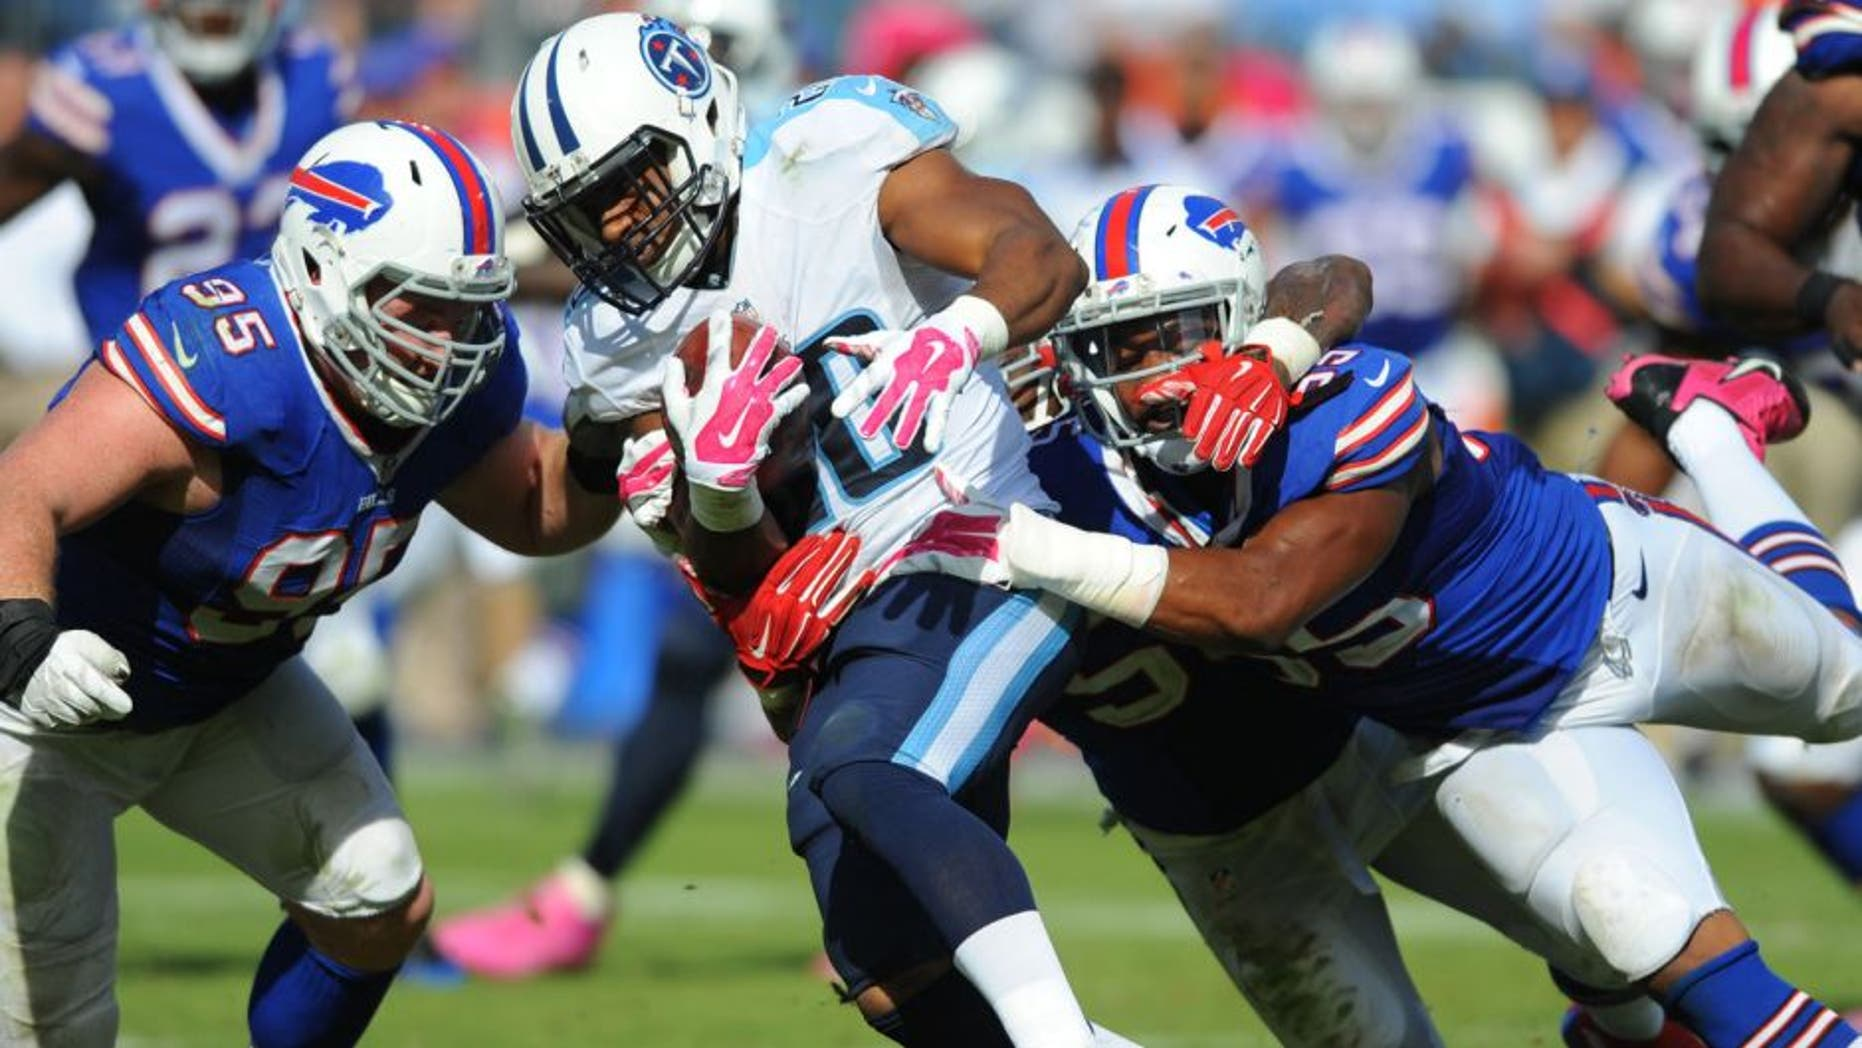 Oct 11, 2015; Nashville, TN, USA; Tennessee Titans running back Bishop Sankey (20) is tackled by Buffalo Bills defensive end Jerry Hughes (55) and defensive tackle Kyle Williams (95) during the second half at Nissan Stadium. The Bills won 14-13. Mandatory Credit: Christopher Hanewinckel-USA TODAY Sports